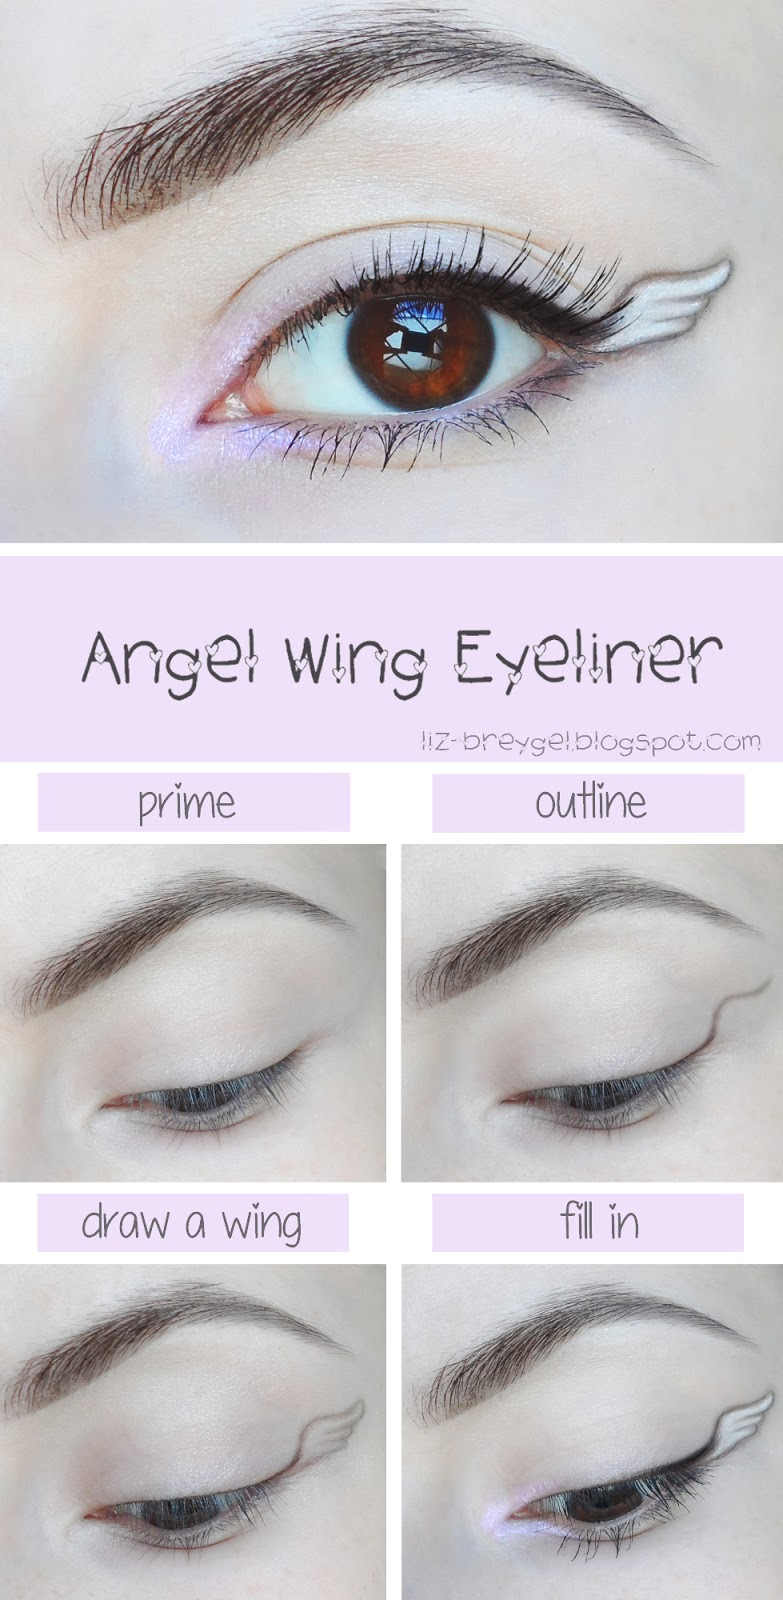 beauty angel blogger liz breygel sweet angel wing eyeliner style step by step makeup look tutorial